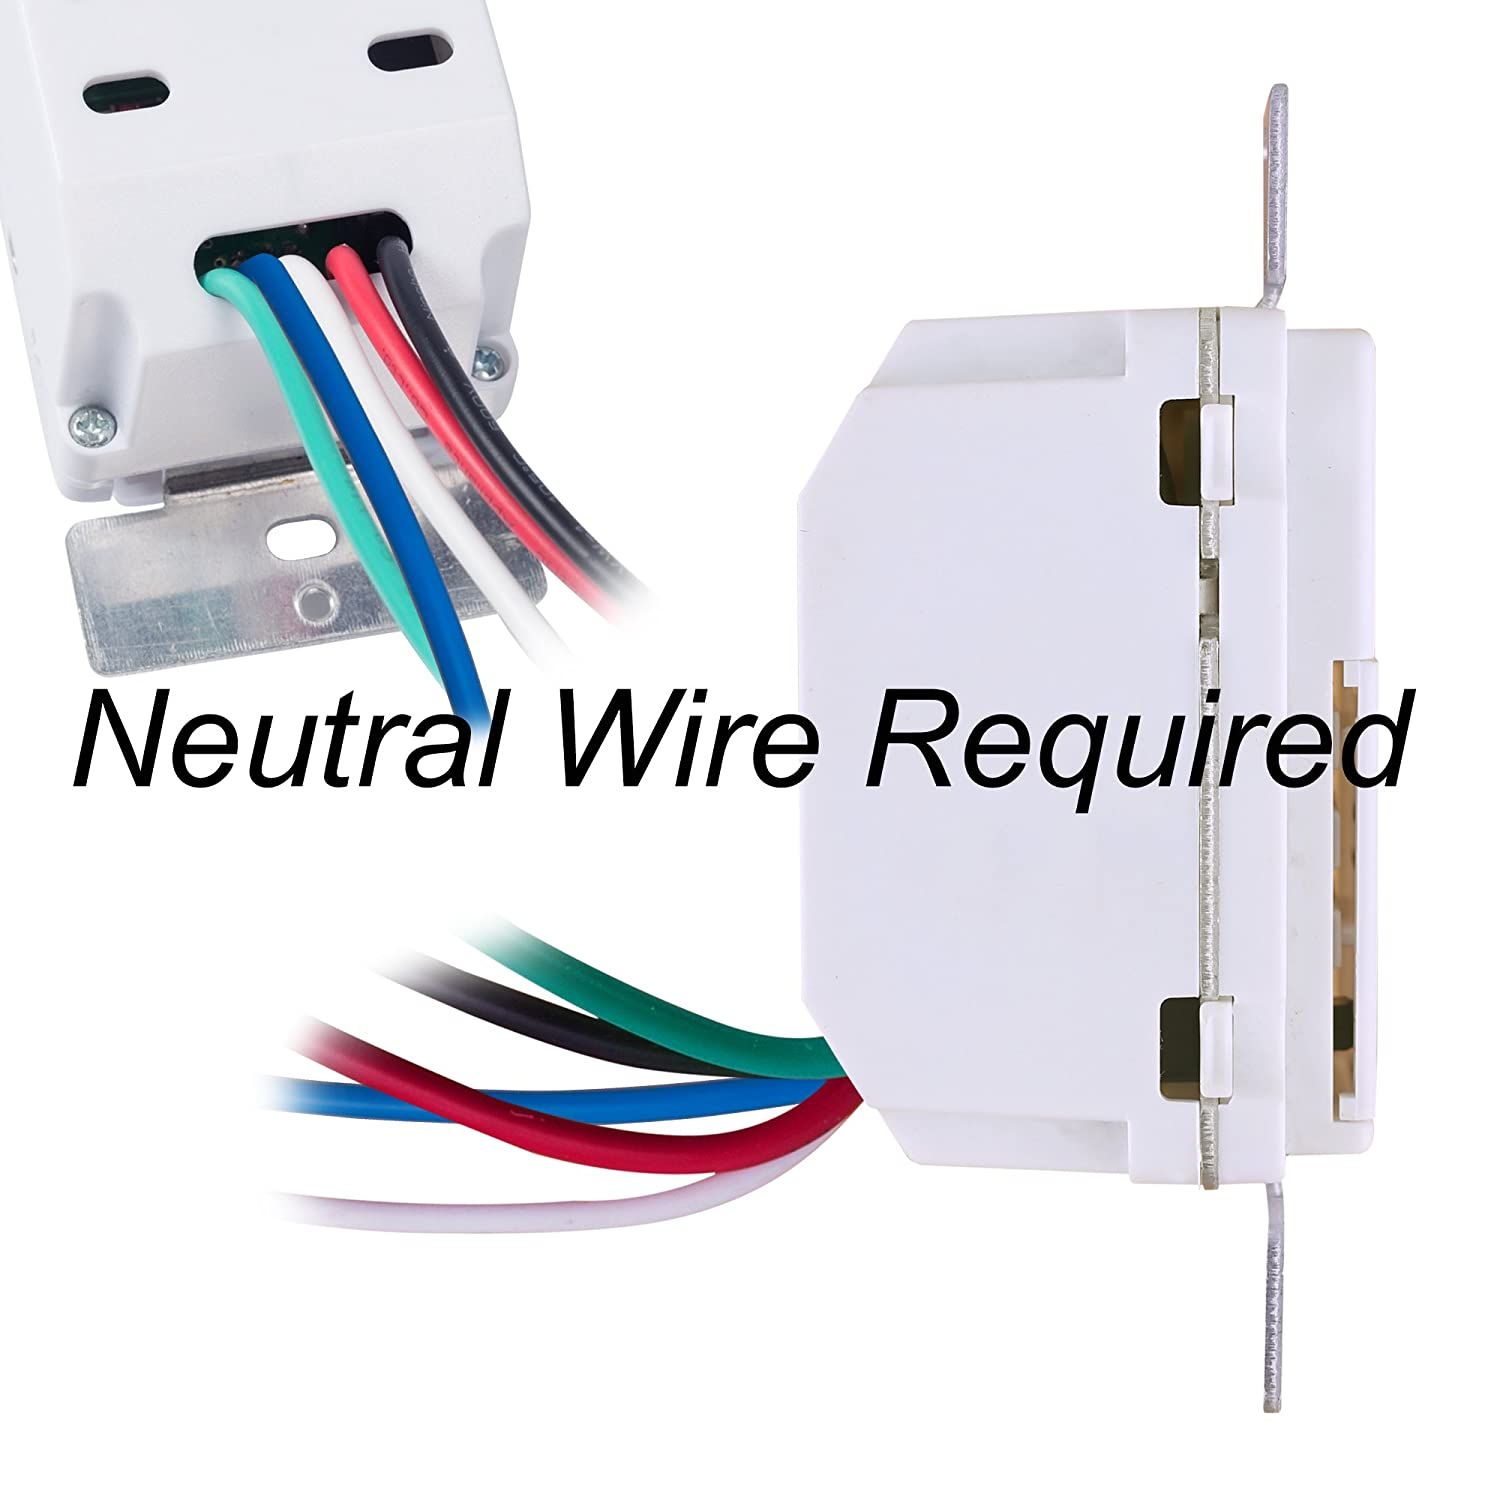 Century 7 Day Programmable In Wall Timer Switch For Lights Fans And 3 Way Power To Fixture Wiring Diagram File Motors Single Pole Compatible With Spdt Both Use Neutral Wire Required